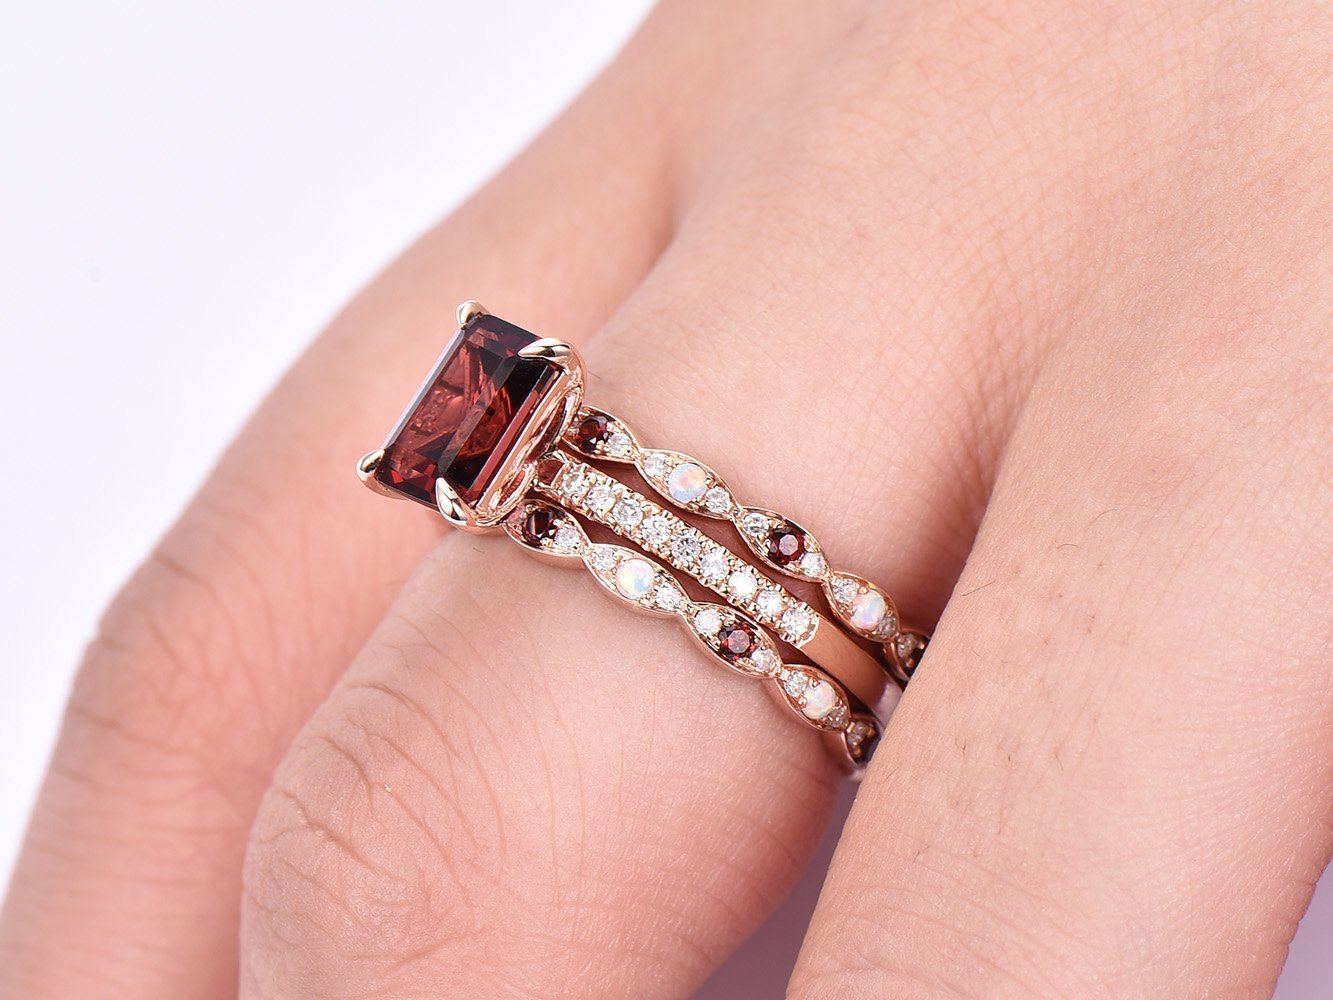 Amazon.com: Emerald Cut Garnet Ring Trio Set Opal/Garnet Matching ...